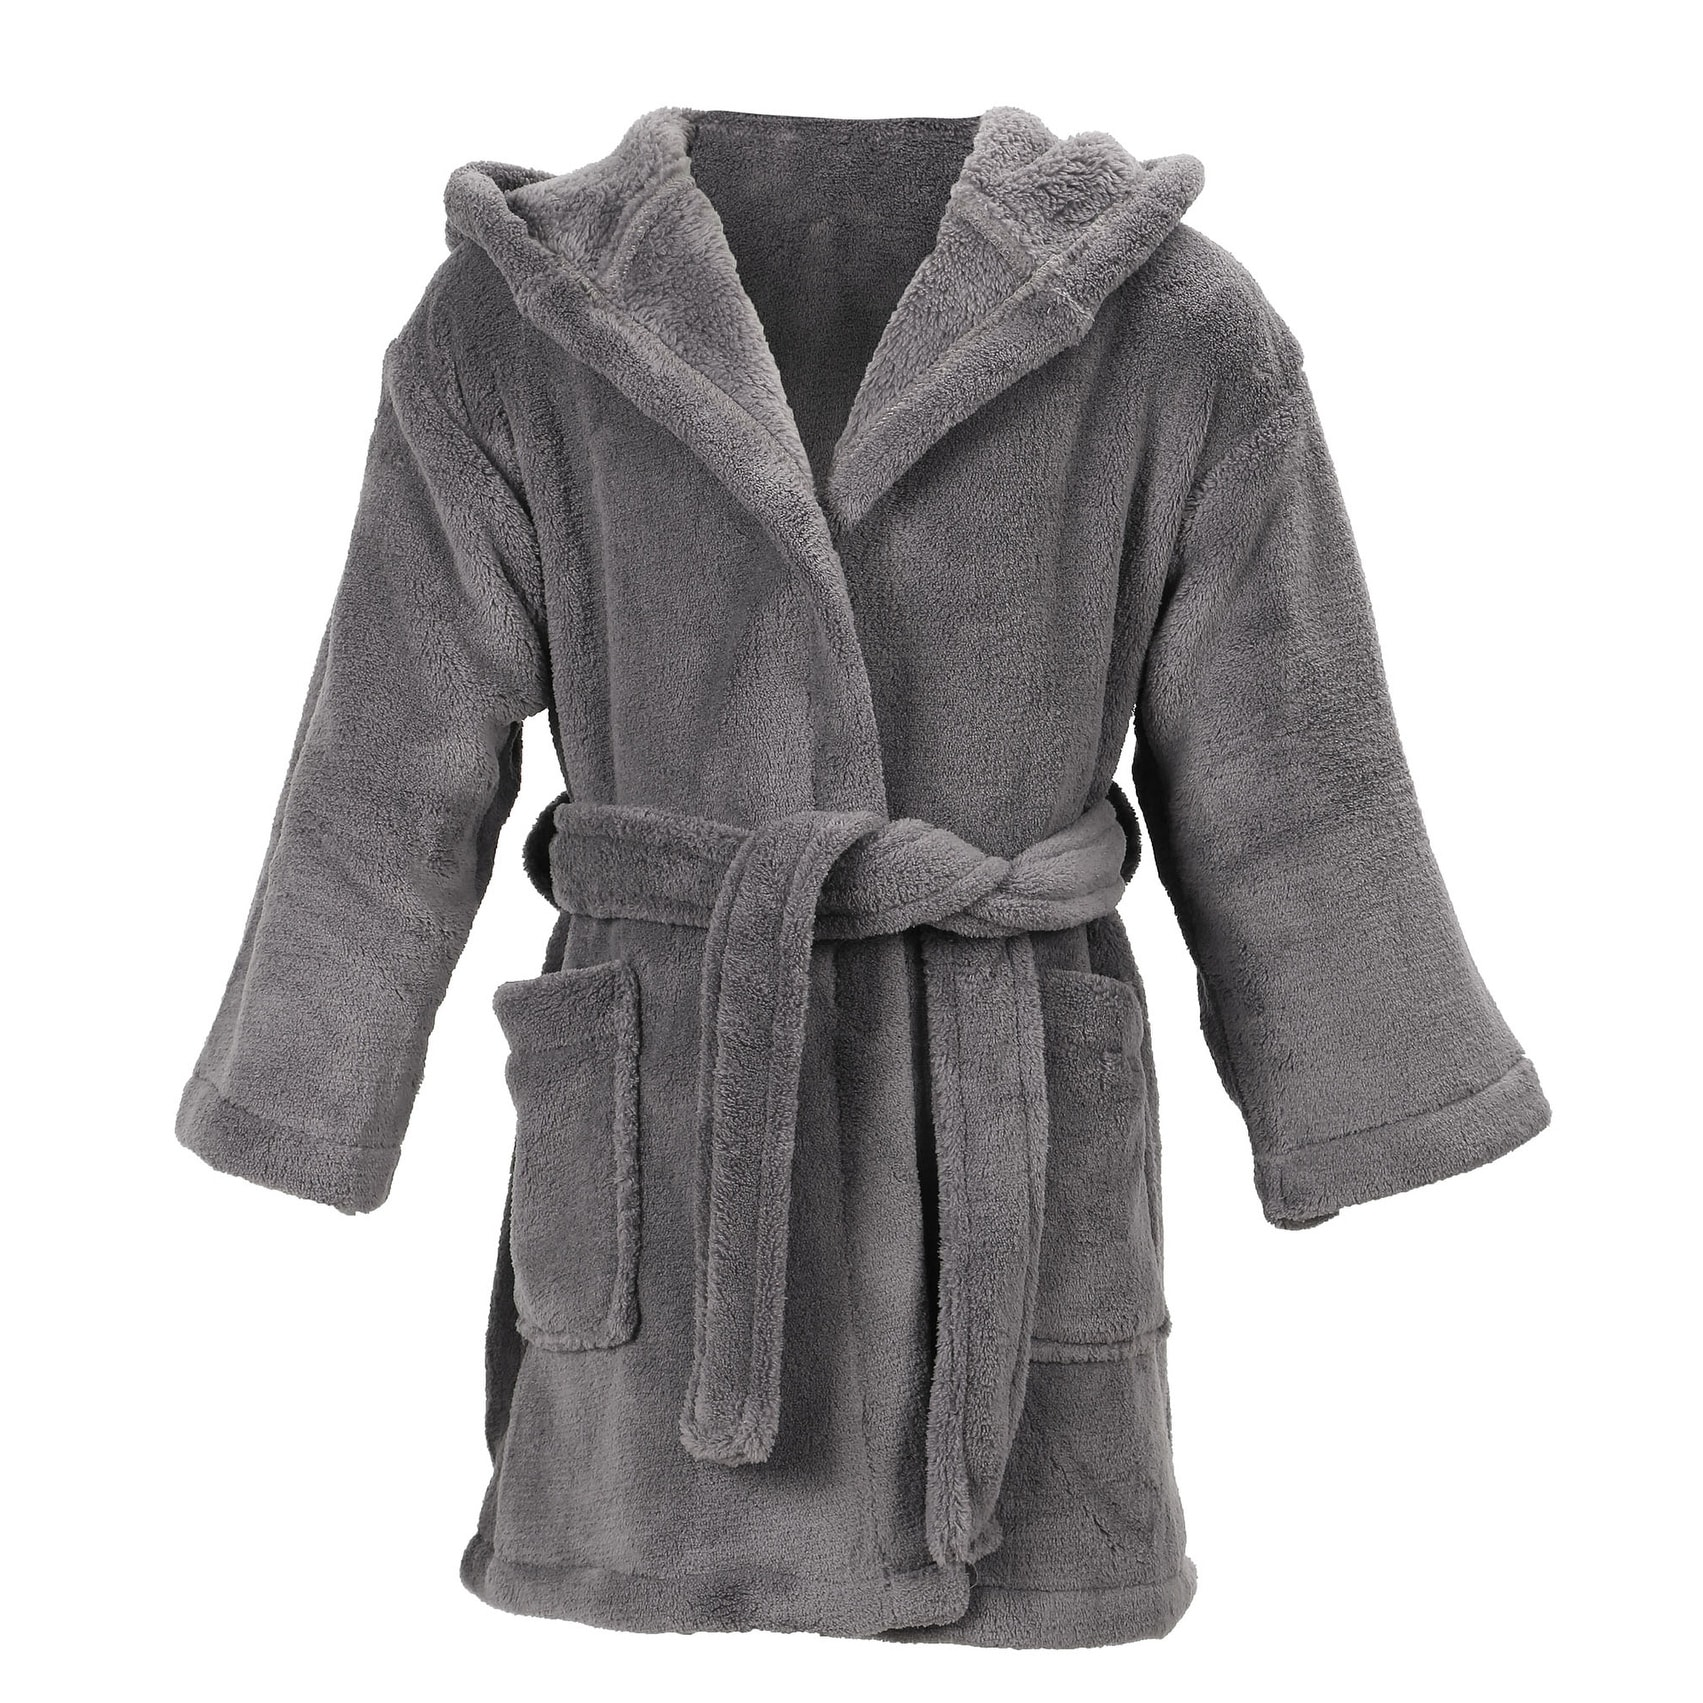 Shop Simplicity Children s Hooded Plush Velvet Robe with Pockets - Free  Shipping On Orders Over  45 - McAoo.com - 18128583 94970291c